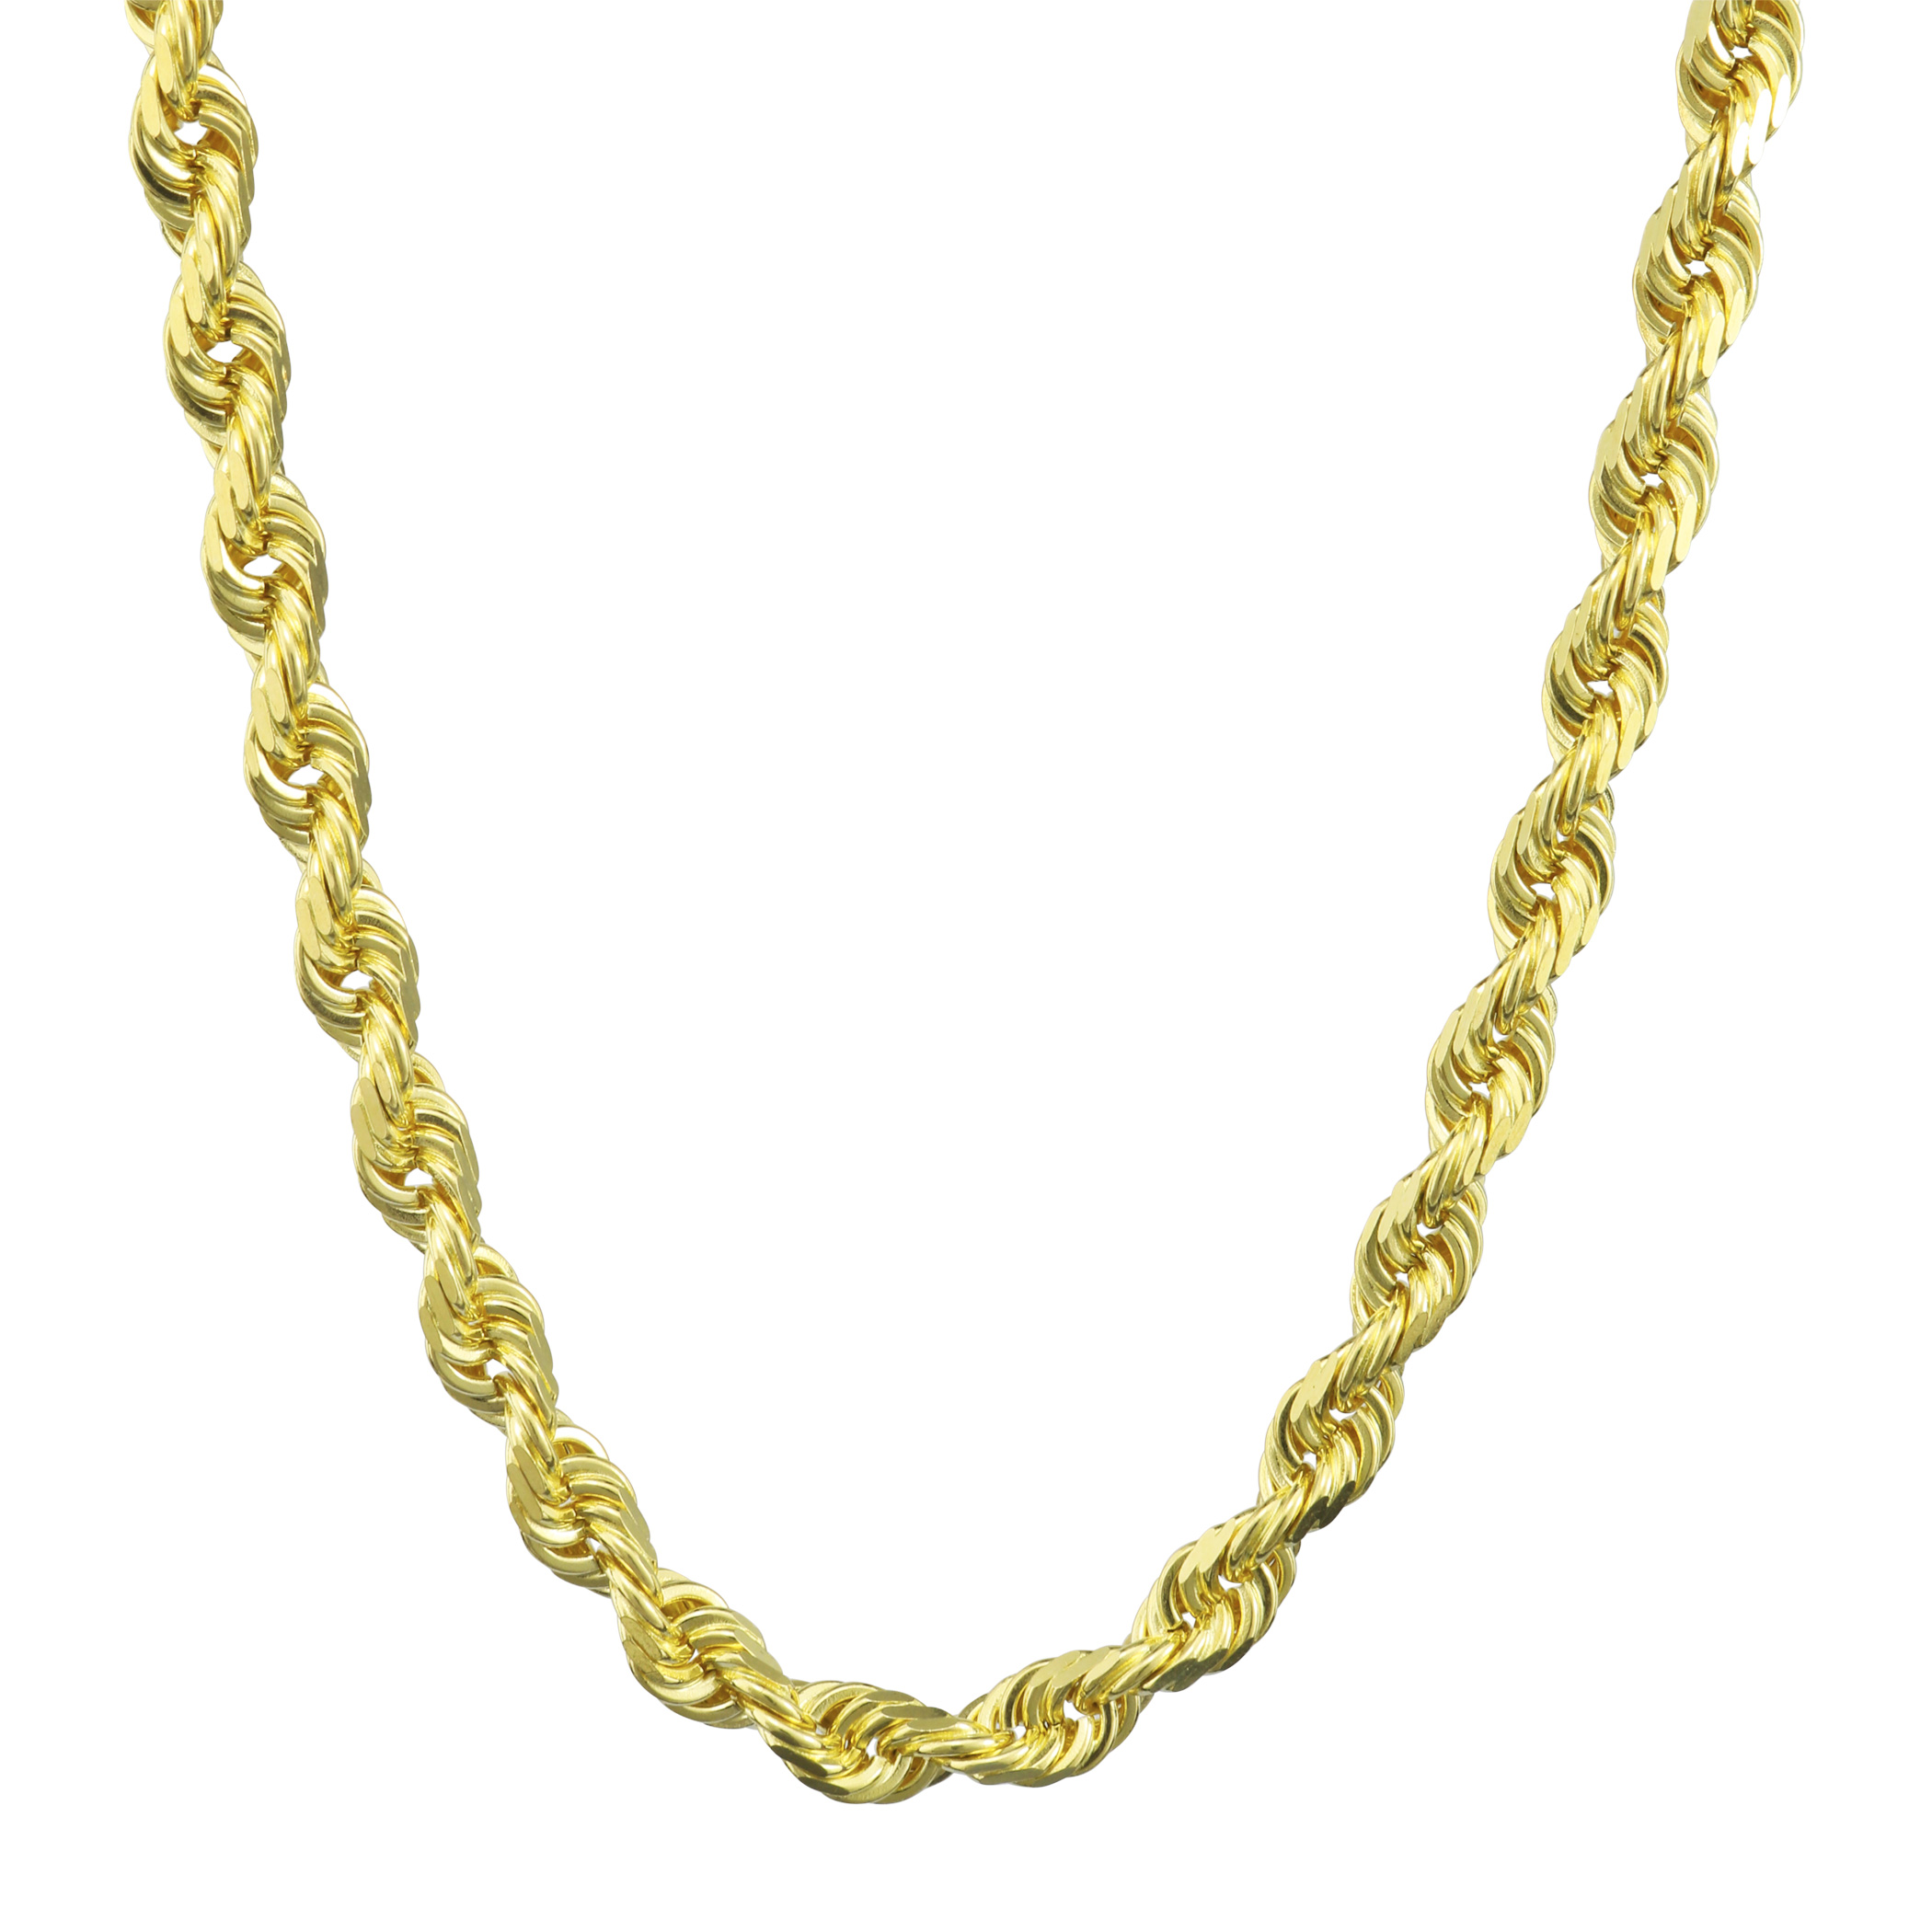 Solid-10k-Yellow-Gold-Mens-Thick-6mm-Diamond-Cut-Rope-Chain-Necklace-20-034-30-034 thumbnail 20